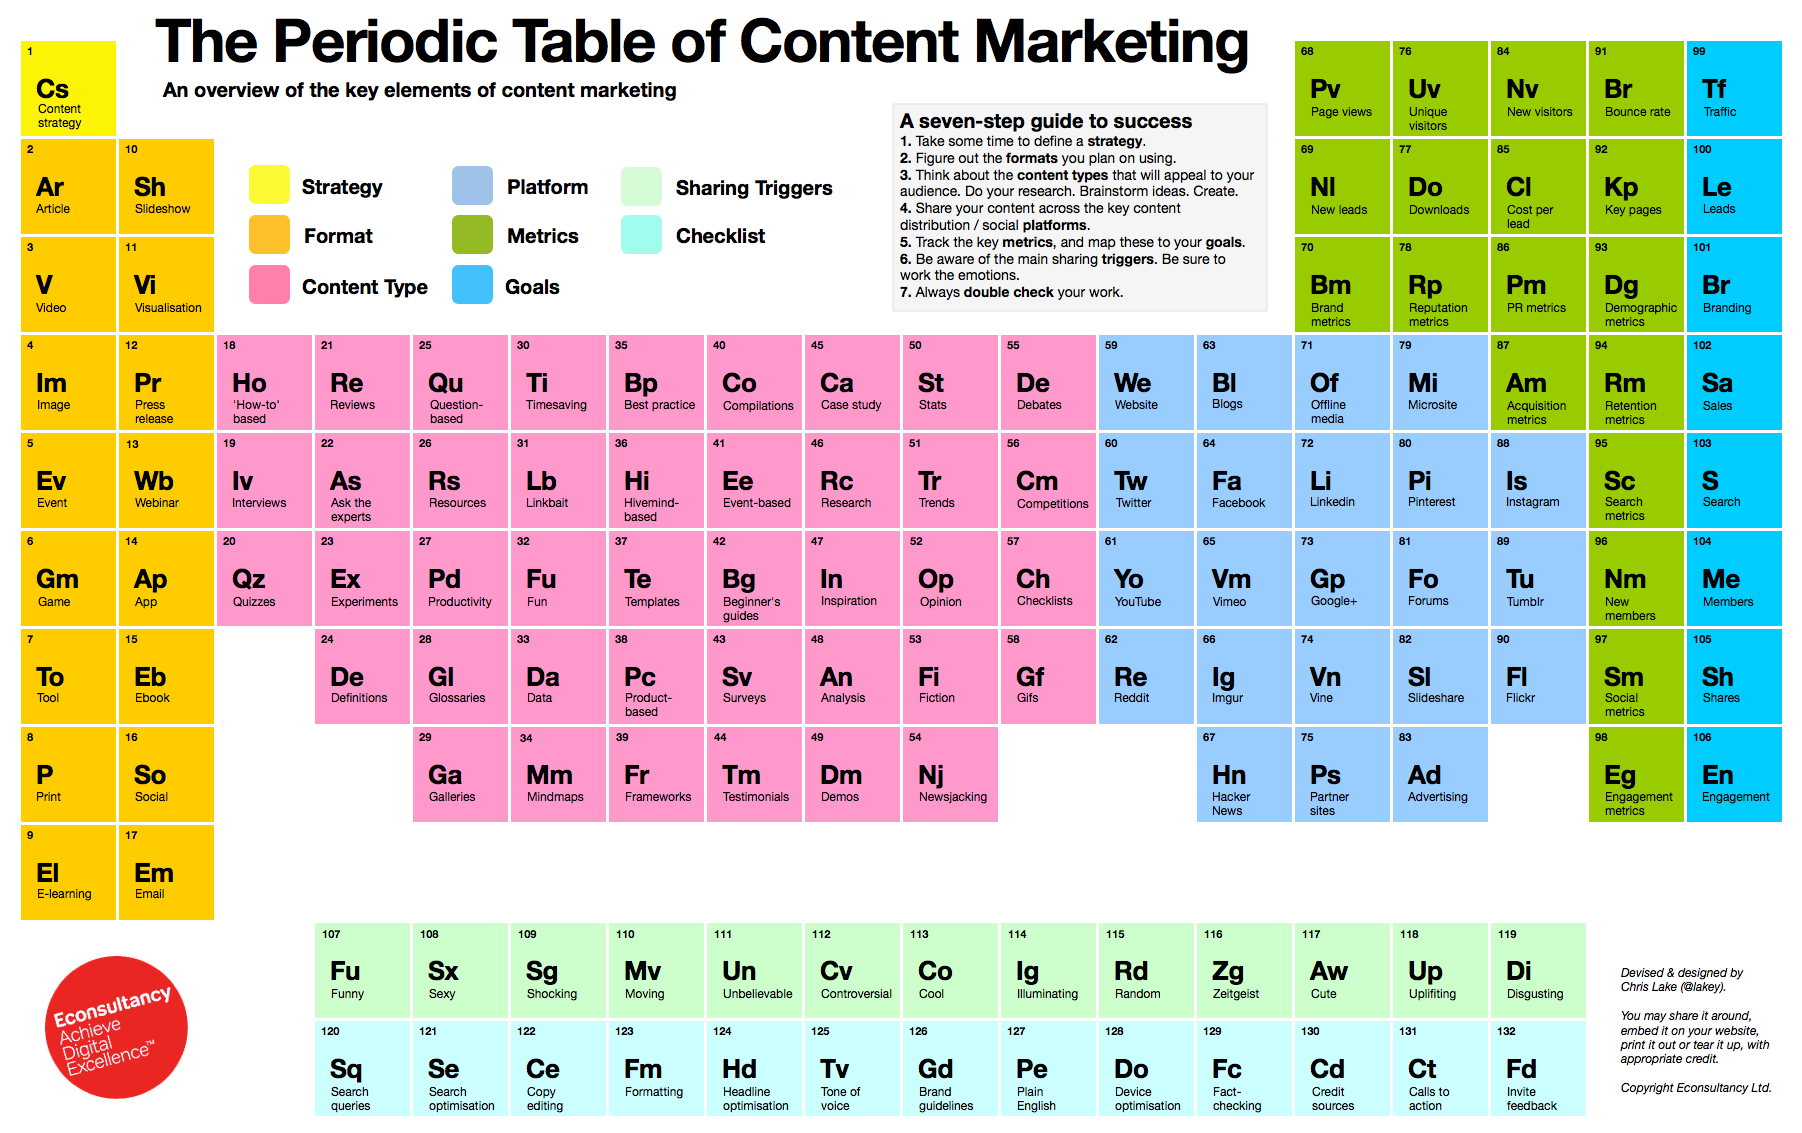 Content Marketing in 1 Easy Image